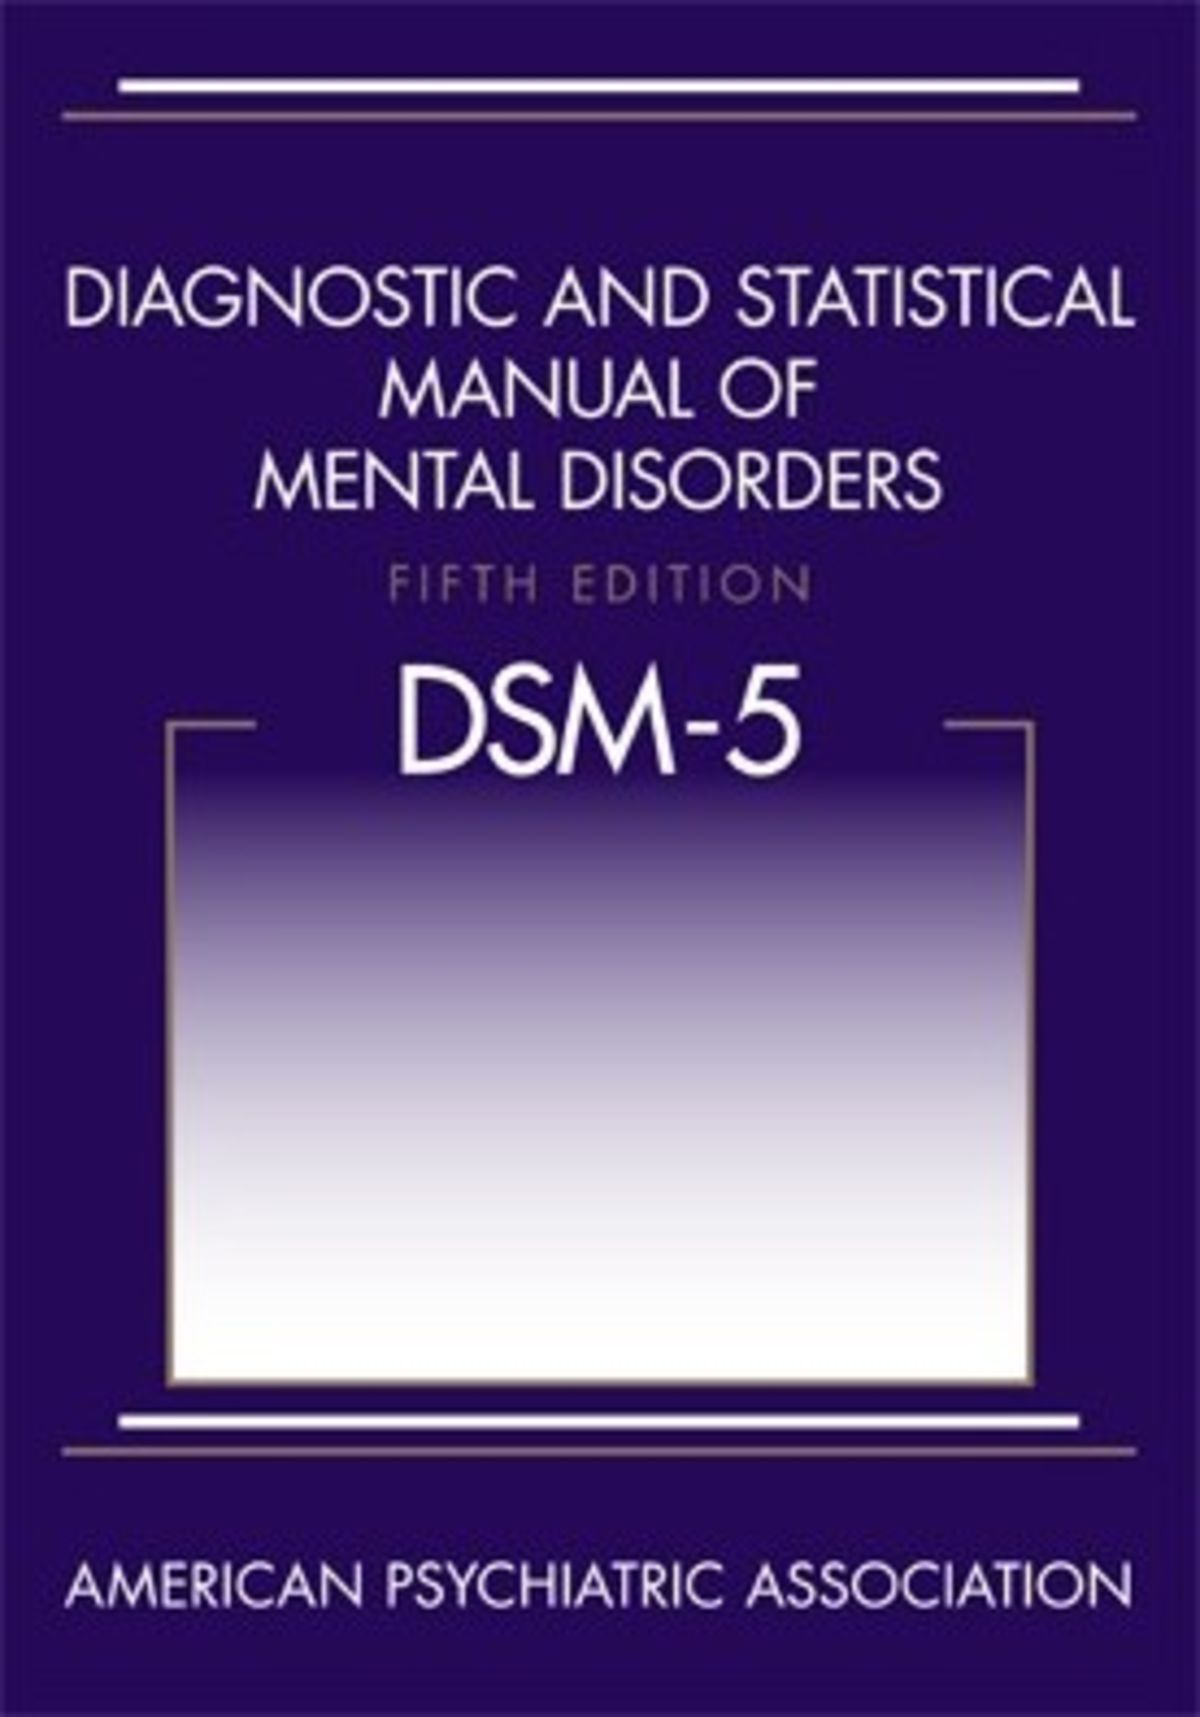 DSM-5 Hysteria: When Normal Mourning Becomes Neurotic